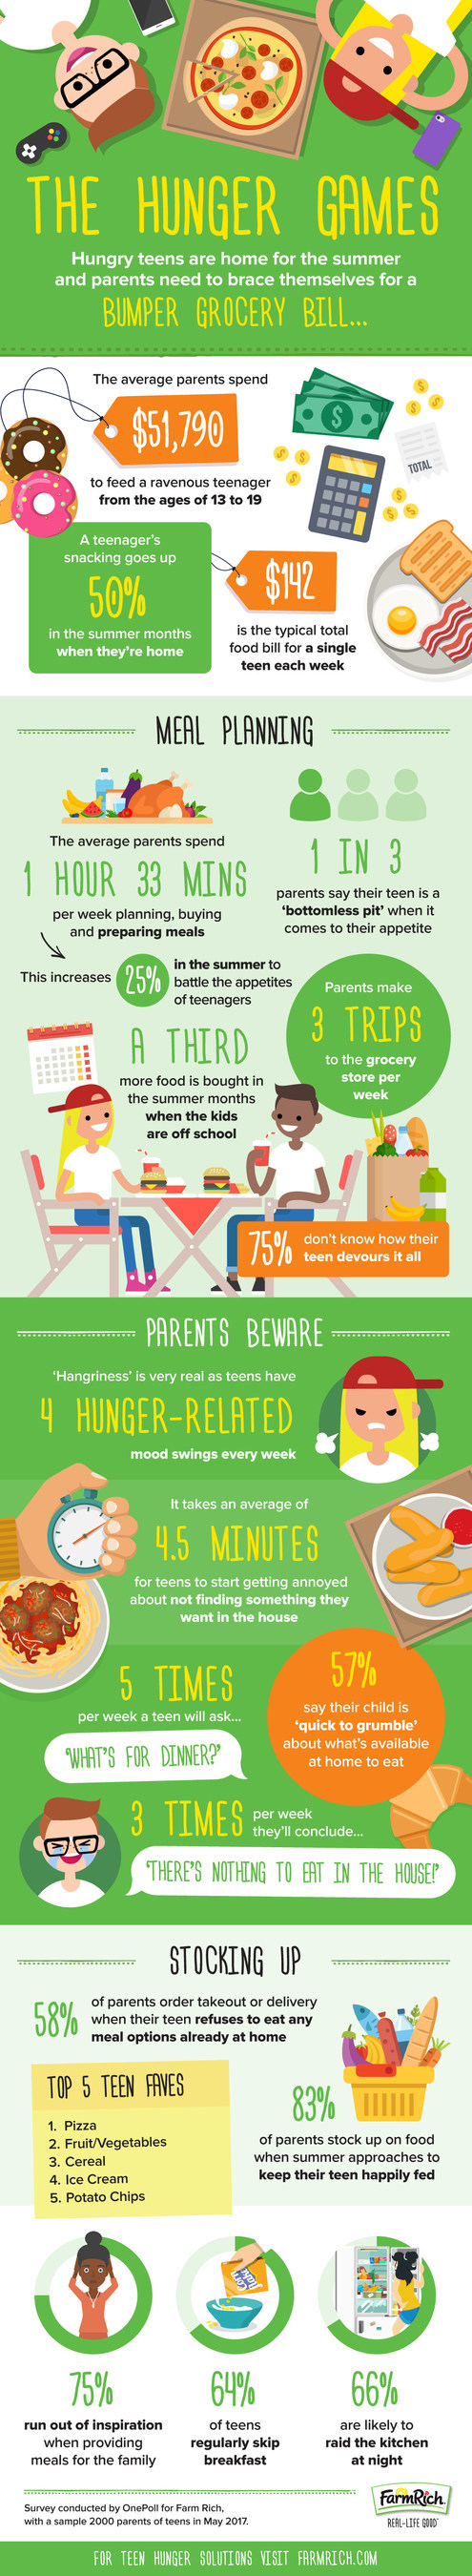 Hungry teens are home for the summer and parents may want to brace themselves for a bumper grocery bill. That's after new research by Farm Rich reveals feeding a teenager costs parents an incredible $51,790 from the ages of 13 to 19, with a teenager's snacking going up 50 percent more in the summer months when they're home. For teen hunger solutions, visit FarmRich.com.